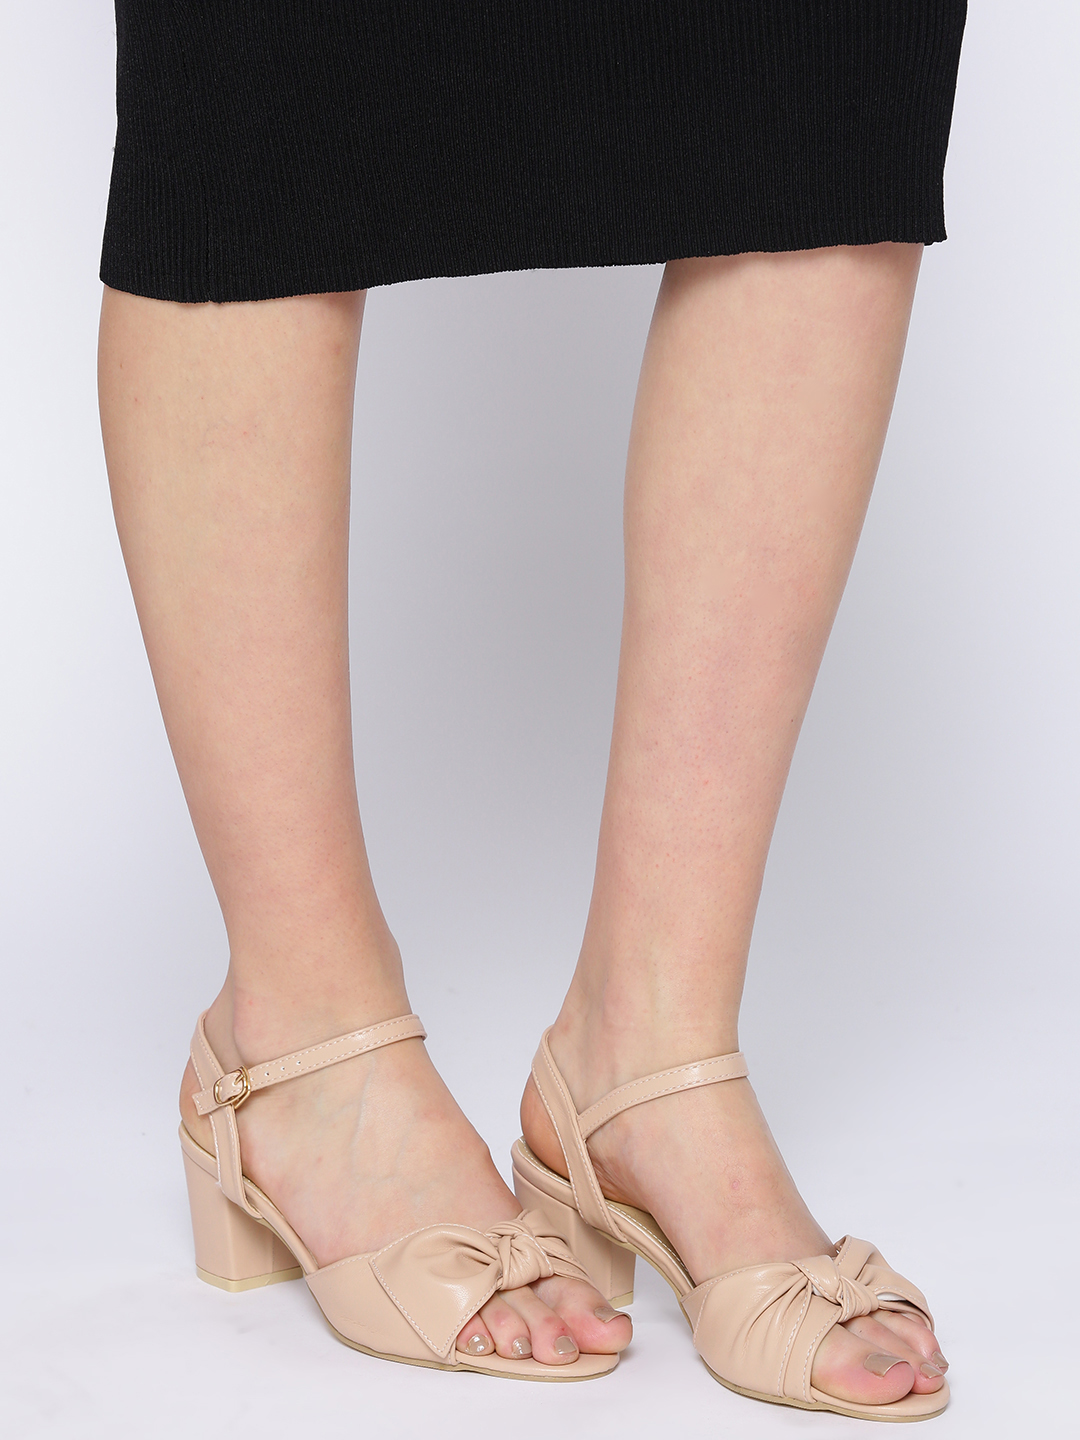 Heels and Wedges-Bowing To Style Block Heels1